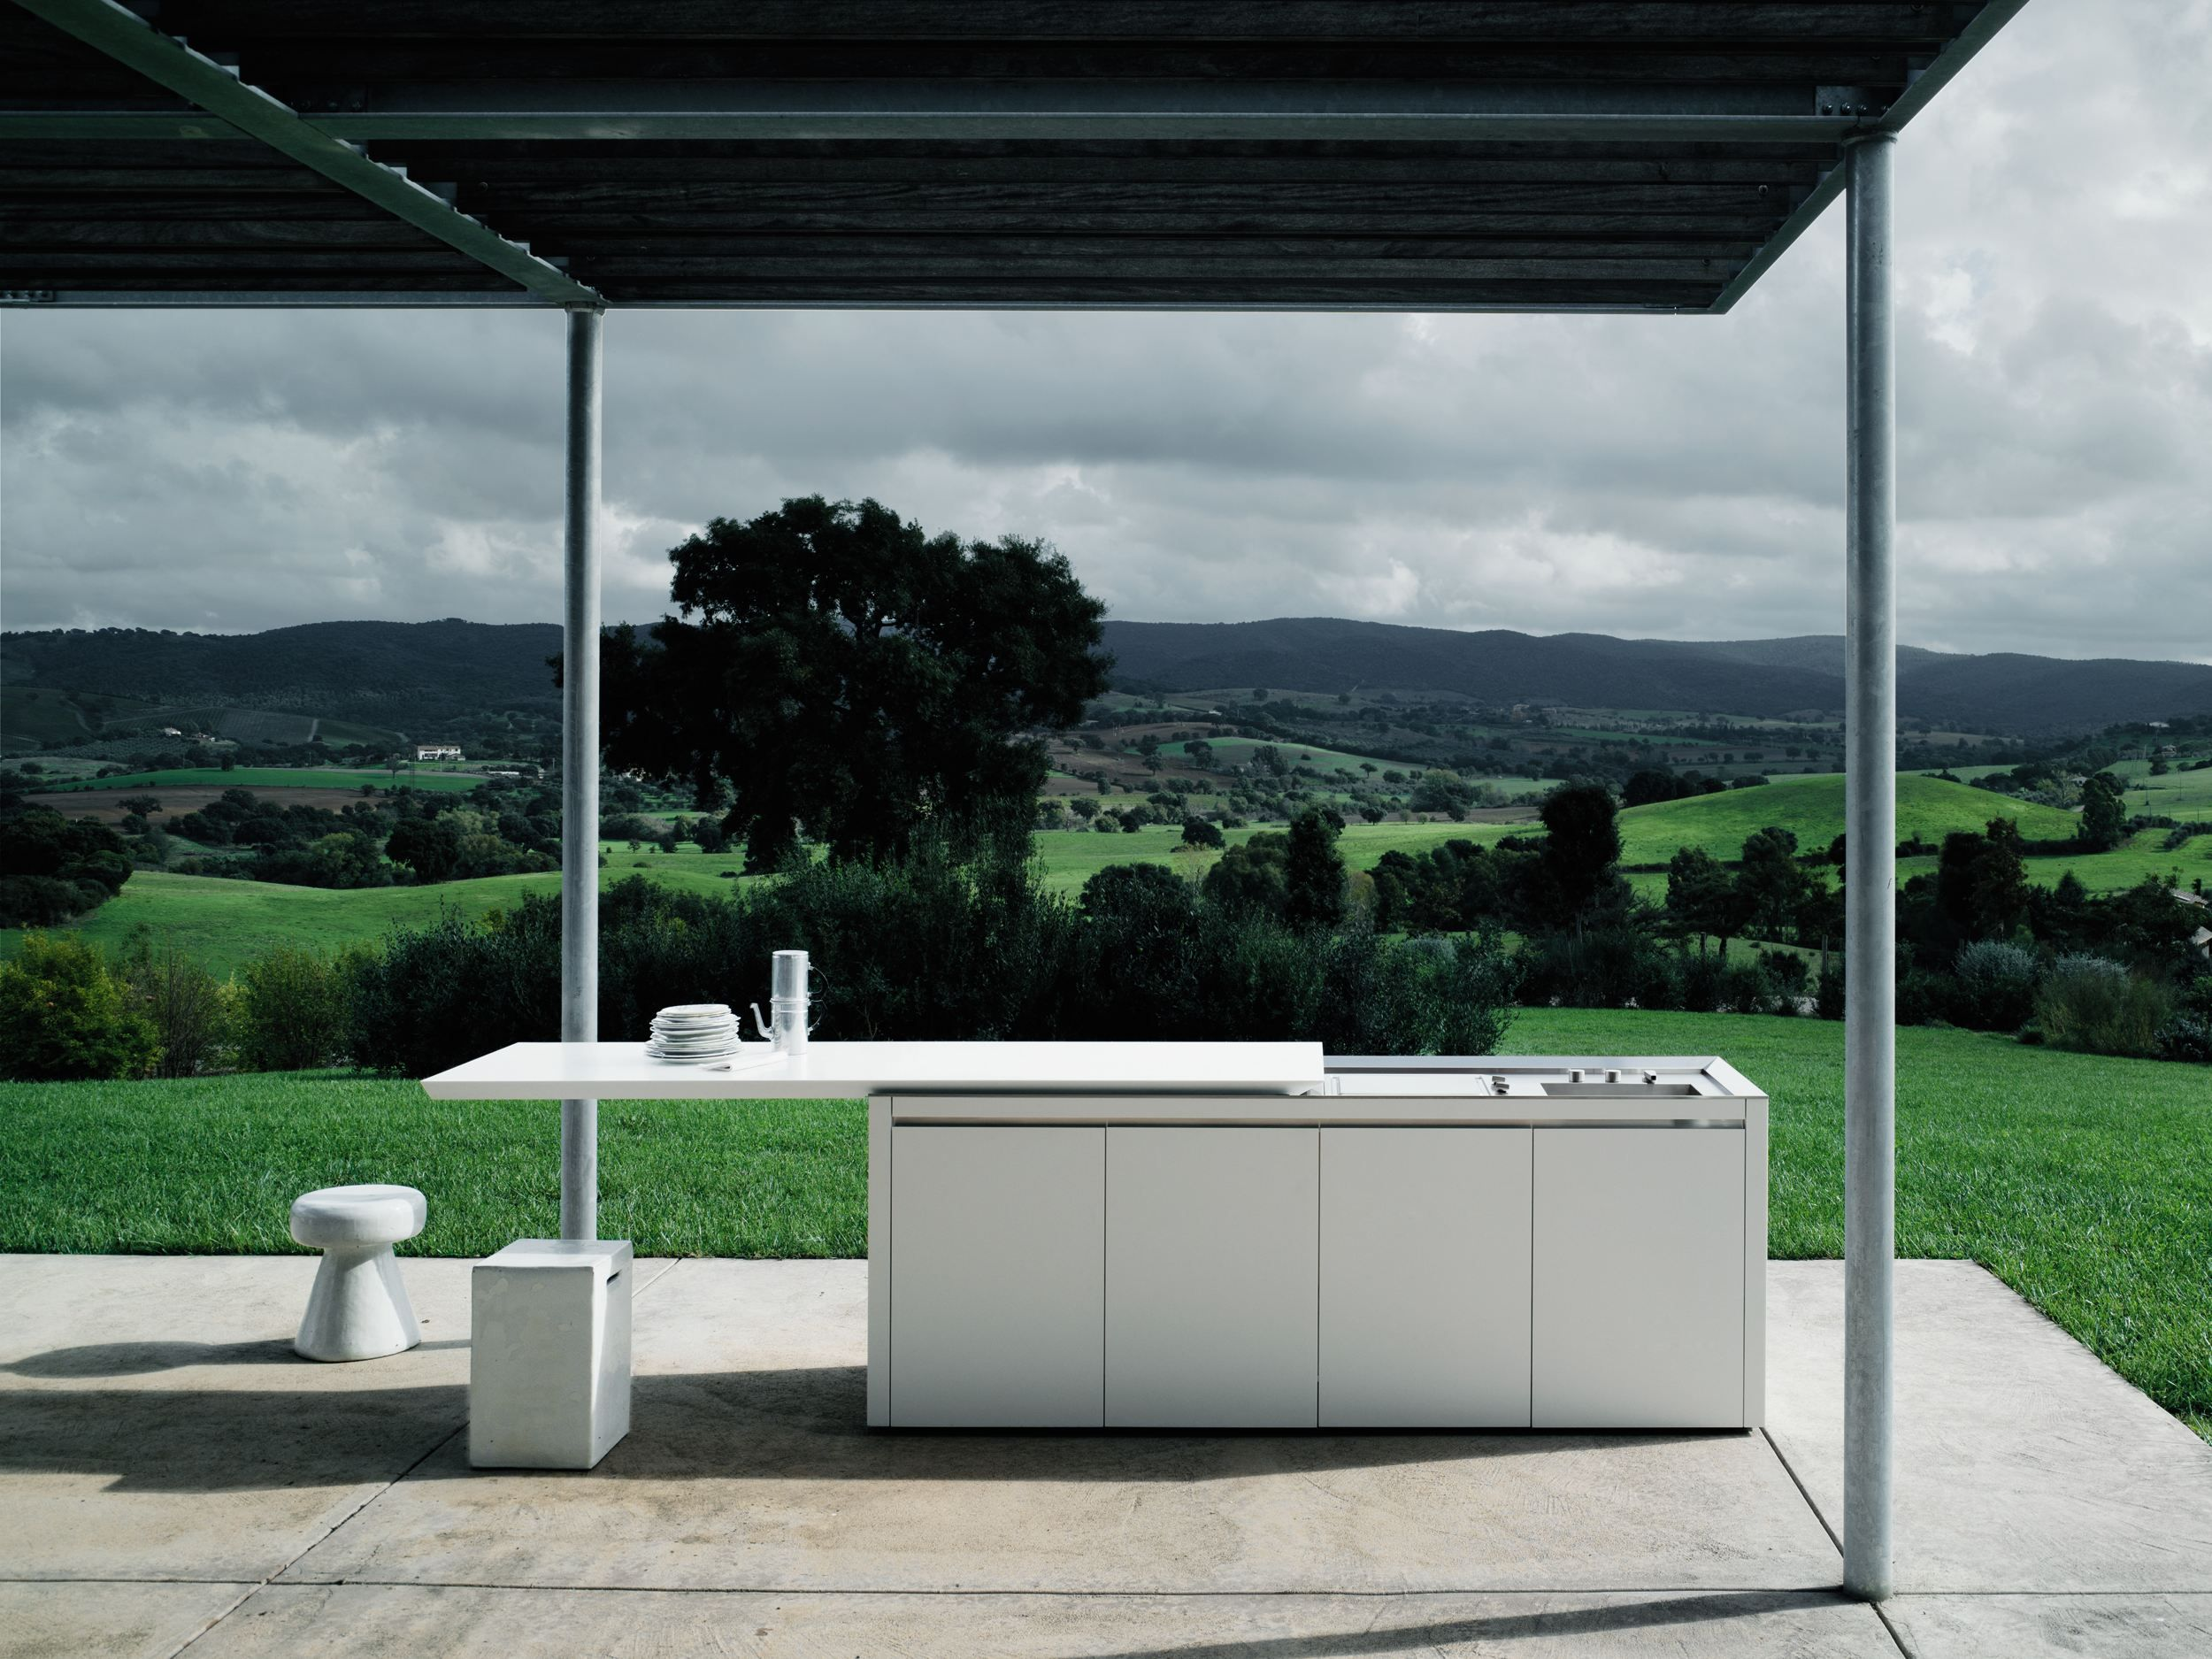 27 best MODULAR OUTDOOR KITCHEN images on Pinterest | Outdoor ...